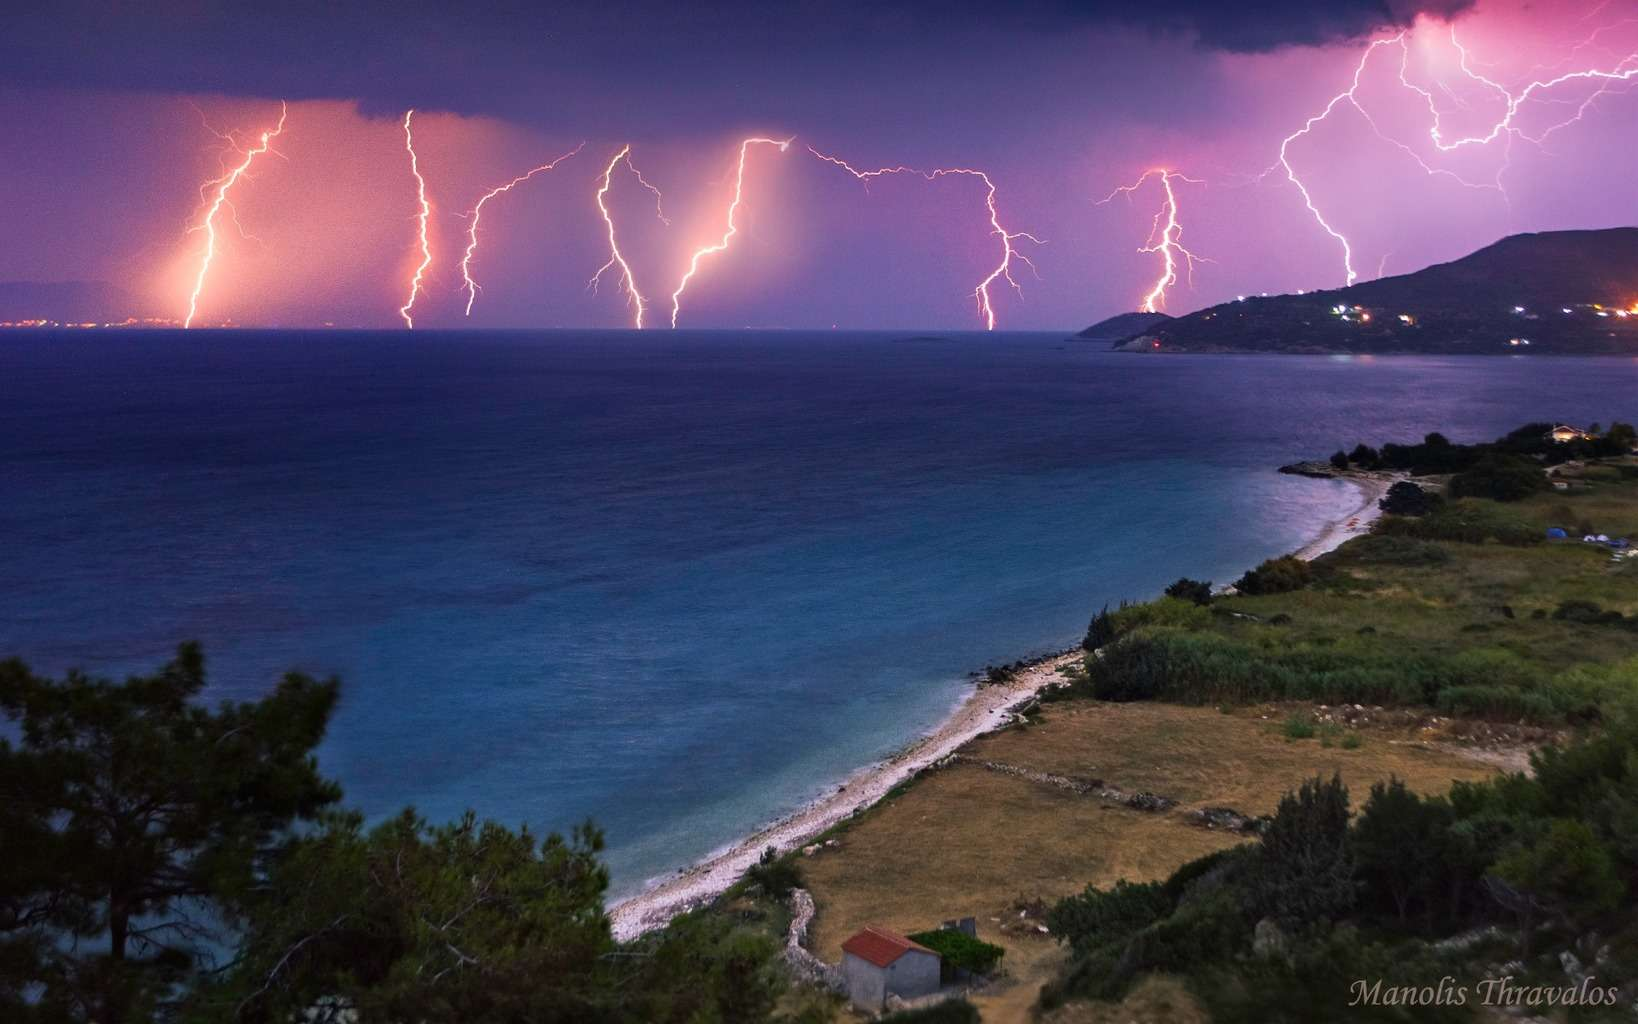 Lightning Barrage over Samos Island in Greece after a MCS passed over a few days ago! I hope you enjoy it people as much as I do when I was shooting it!!